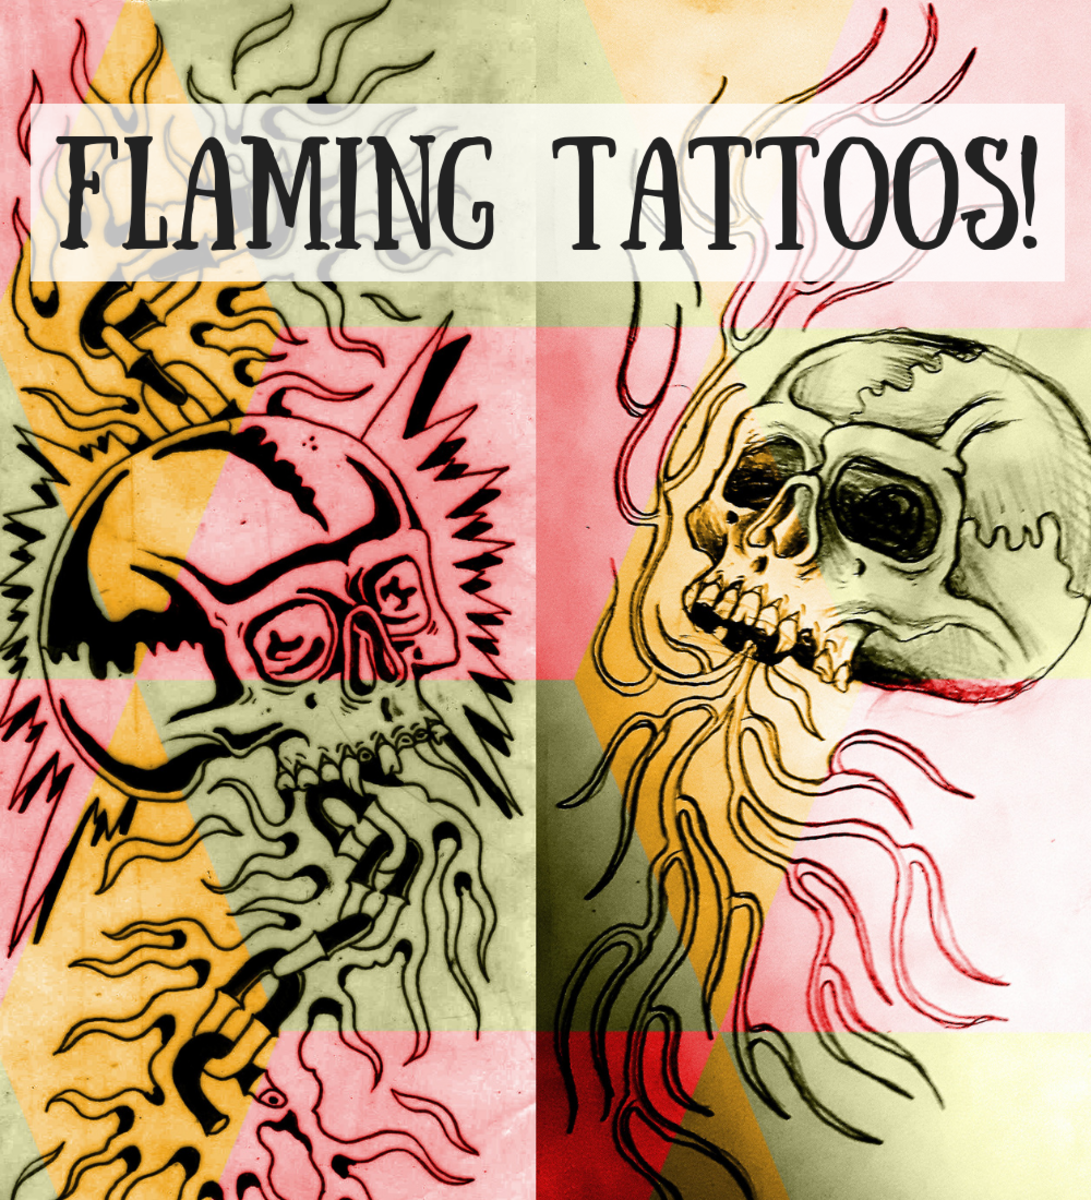 There are near-endless design ideas for tattoos that incorporate flames or fire. These two designs feature skulls with flames.